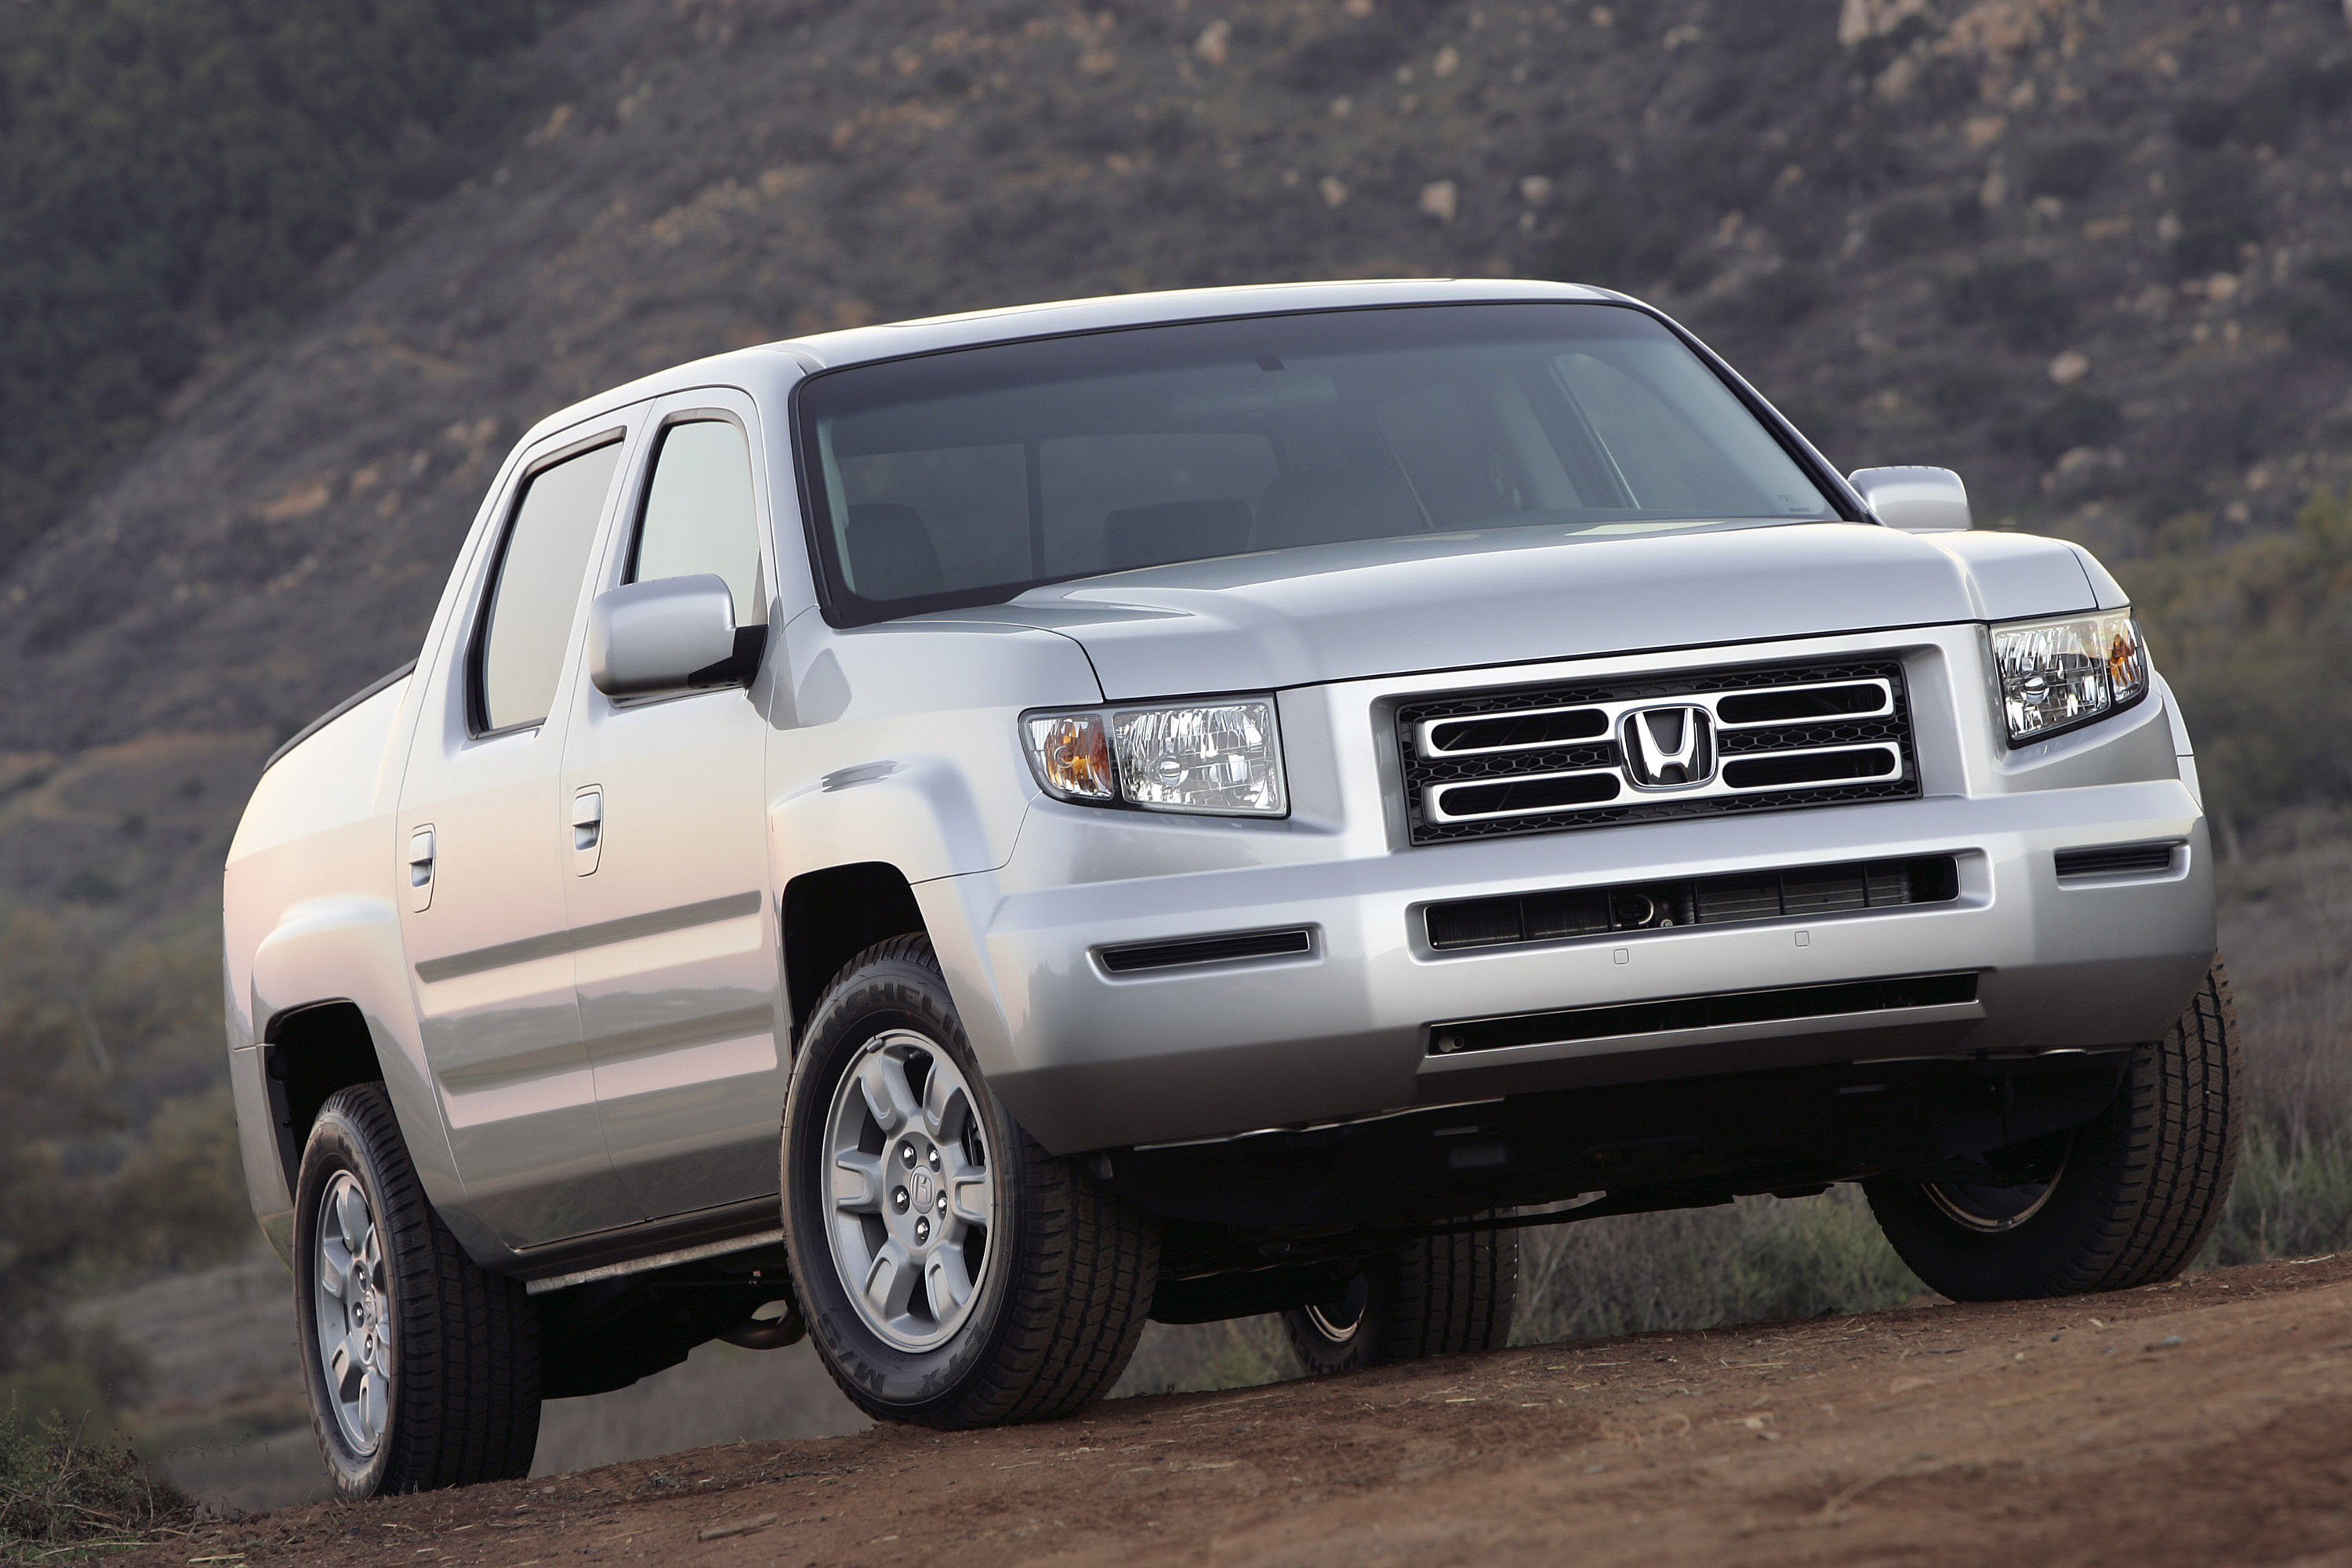 honda ridgeline rtl 2006. Black Bedroom Furniture Sets. Home Design Ideas